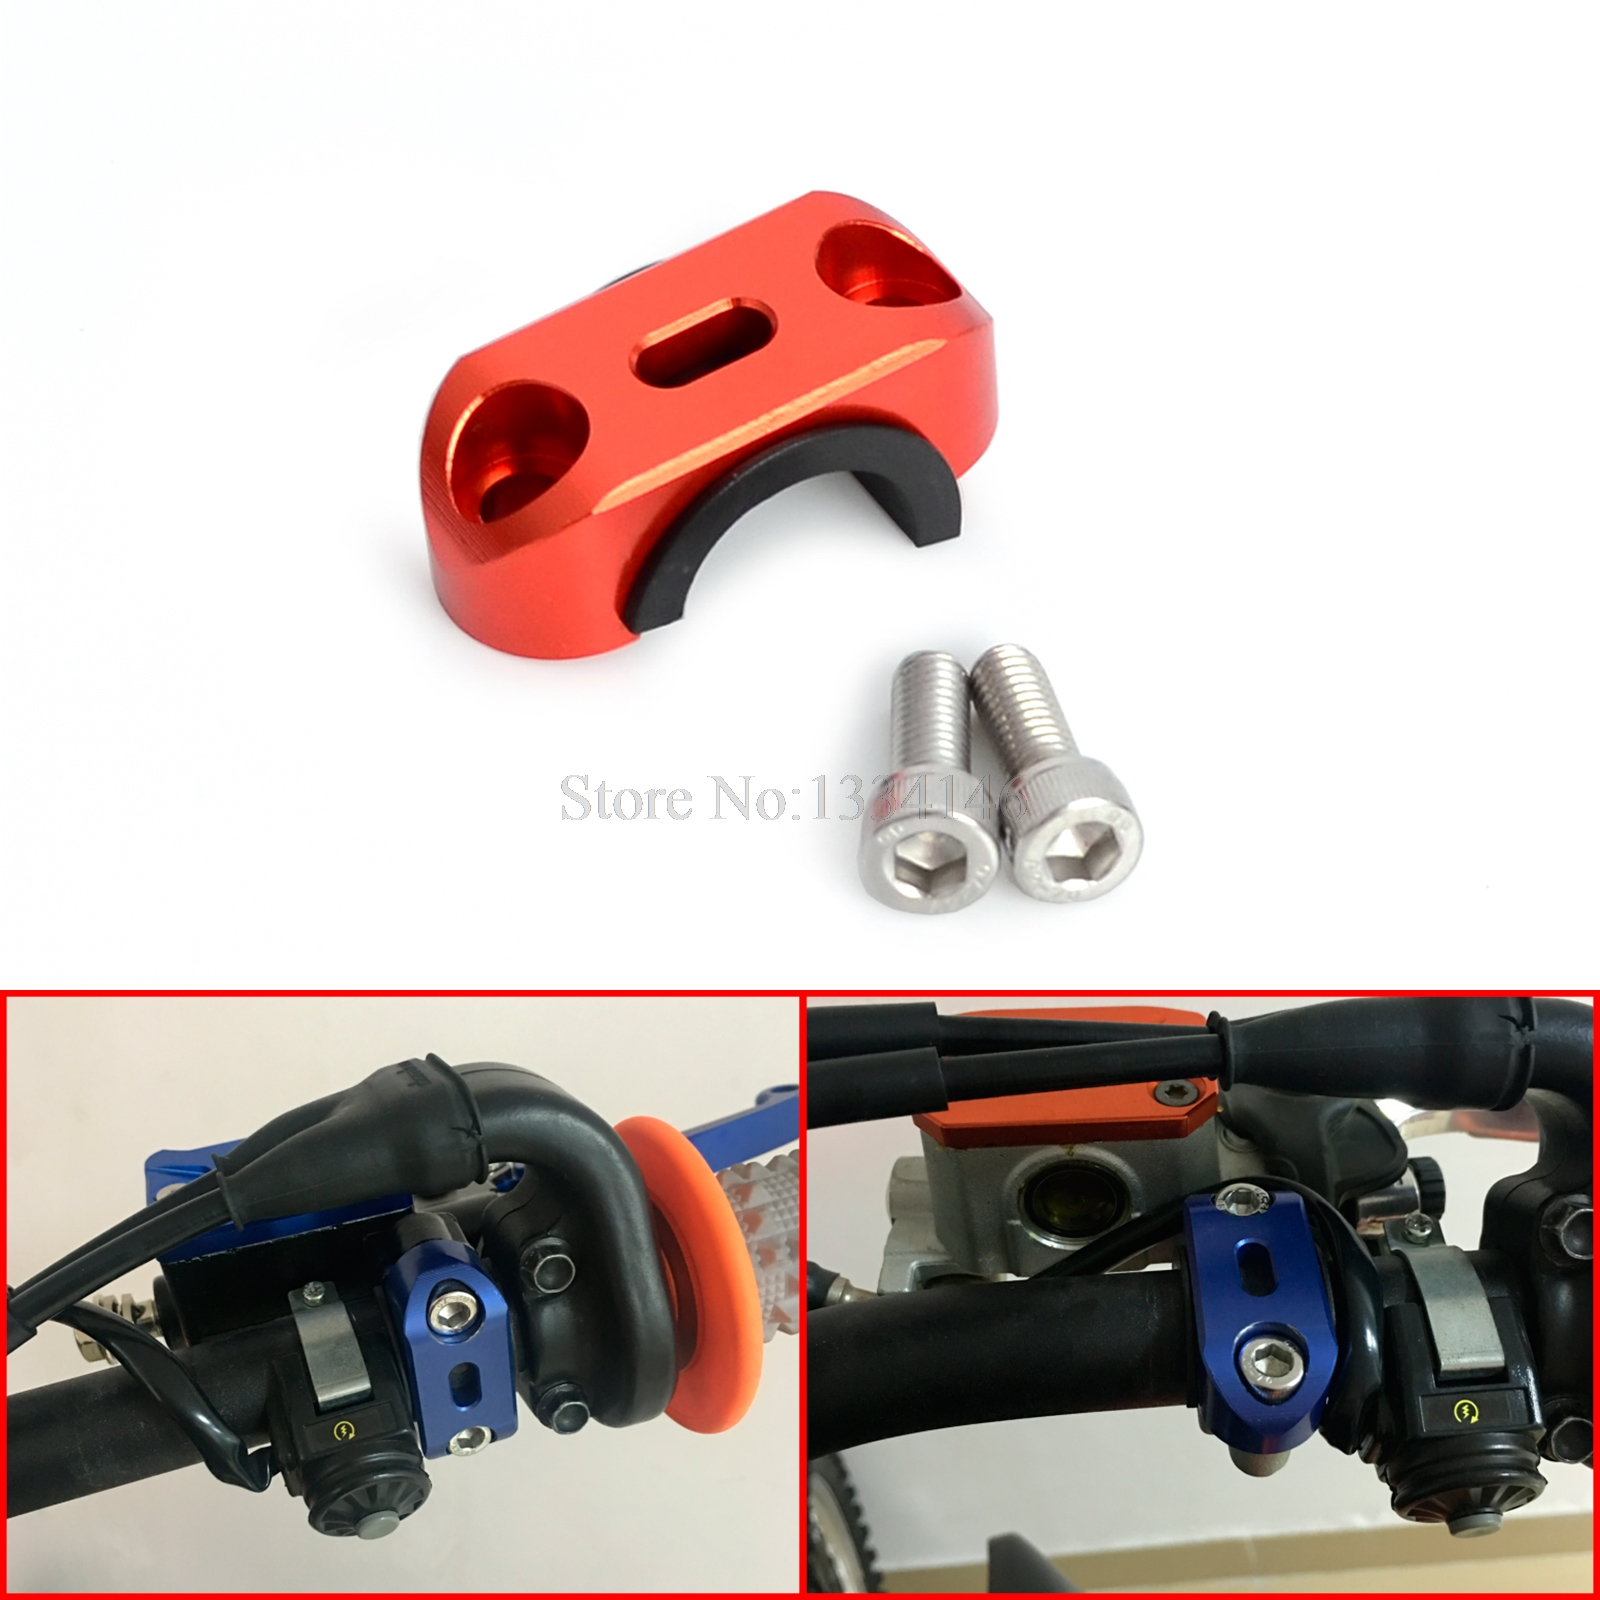 NICECNC Clutch Brake Master Cylinder Clamp Handlebar Bar Clamp Cover For KTM 125 250 350 450 525 SX SXF EXC EXCF XC XCW 00-2015